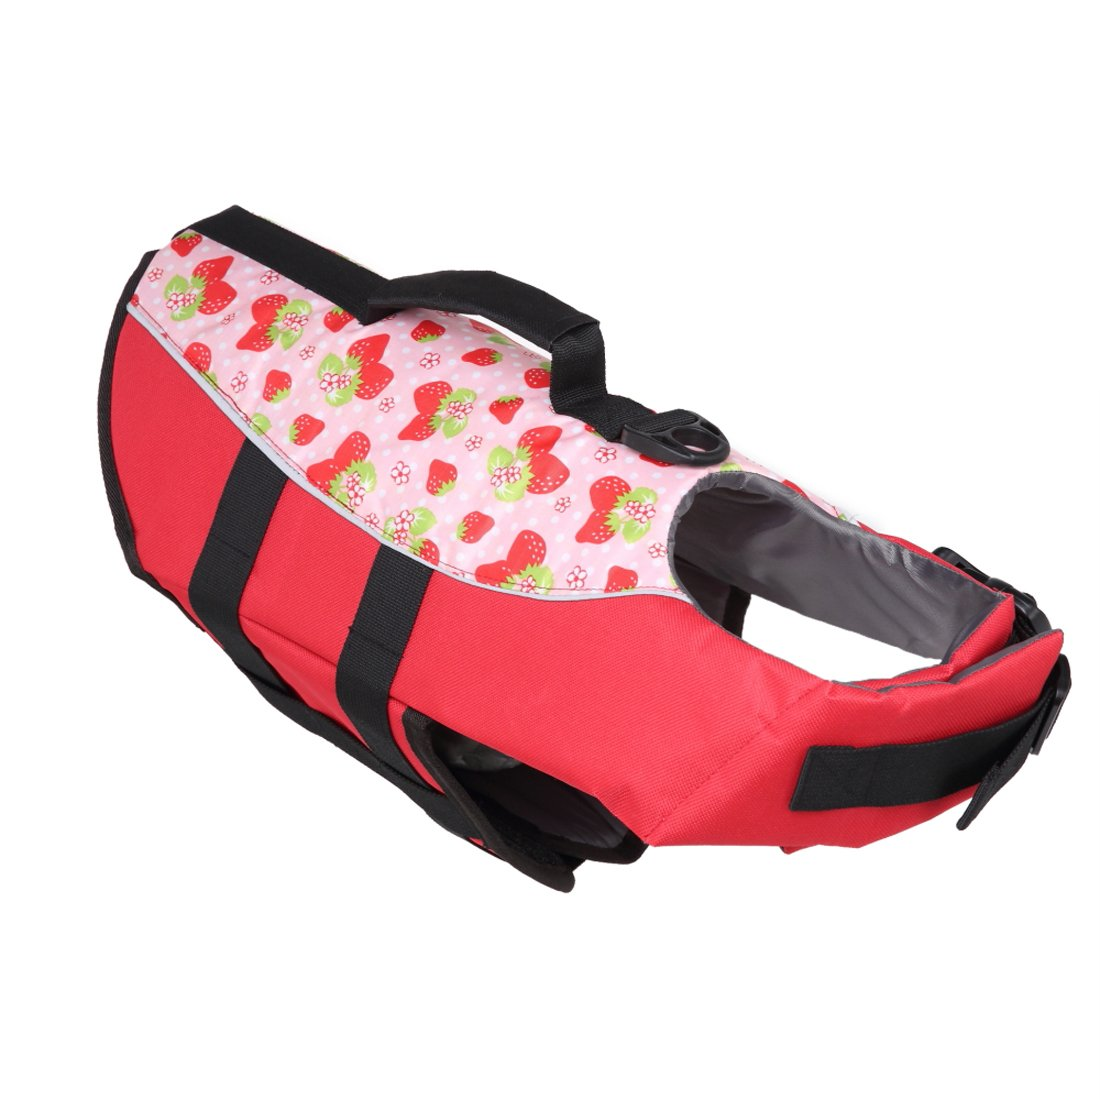 Red S (Bust 18-20\ Red S (Bust 18-20\ GabeFish Dog Patterned Life Jacket Pet Safety Swimsuit Floatation Life Vest Preserver for Small Medium Large Dogs Red Small